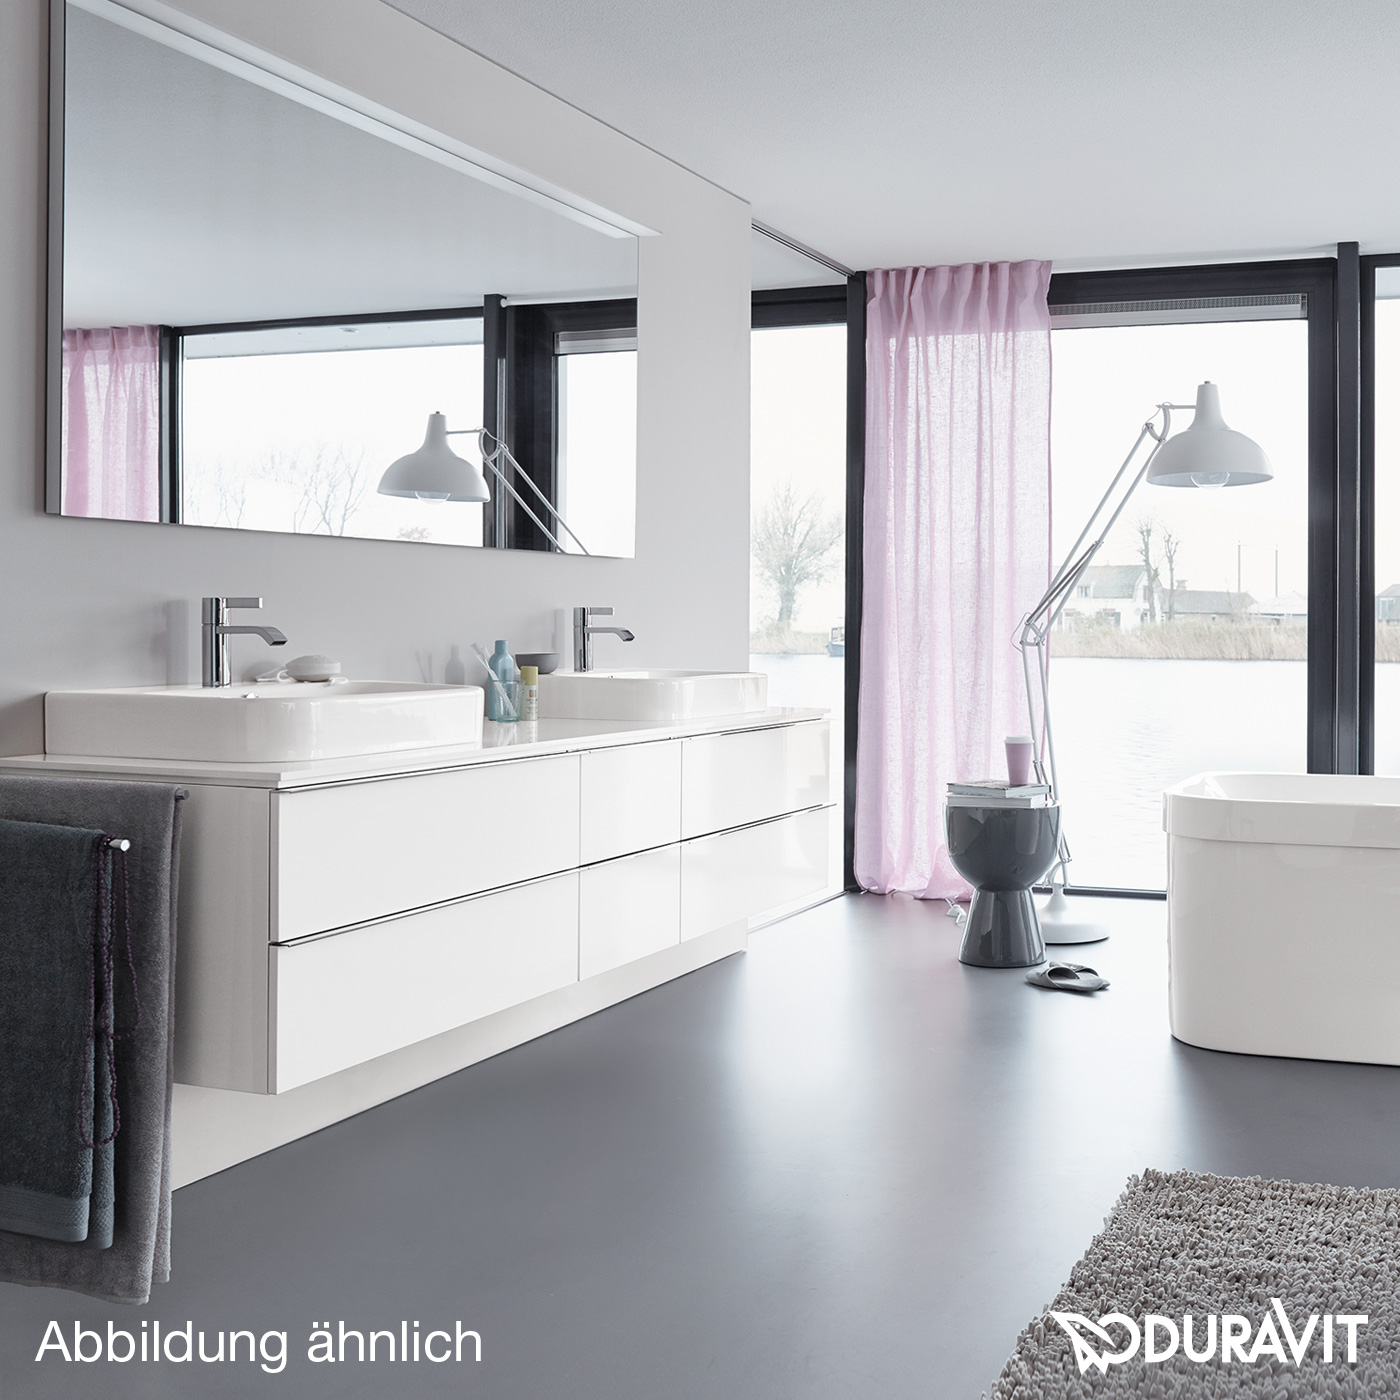 duravit happy d 2 konsole f r aufsatzbecken t 48 cm vorwand leinen h2015c07575 130 reuter. Black Bedroom Furniture Sets. Home Design Ideas